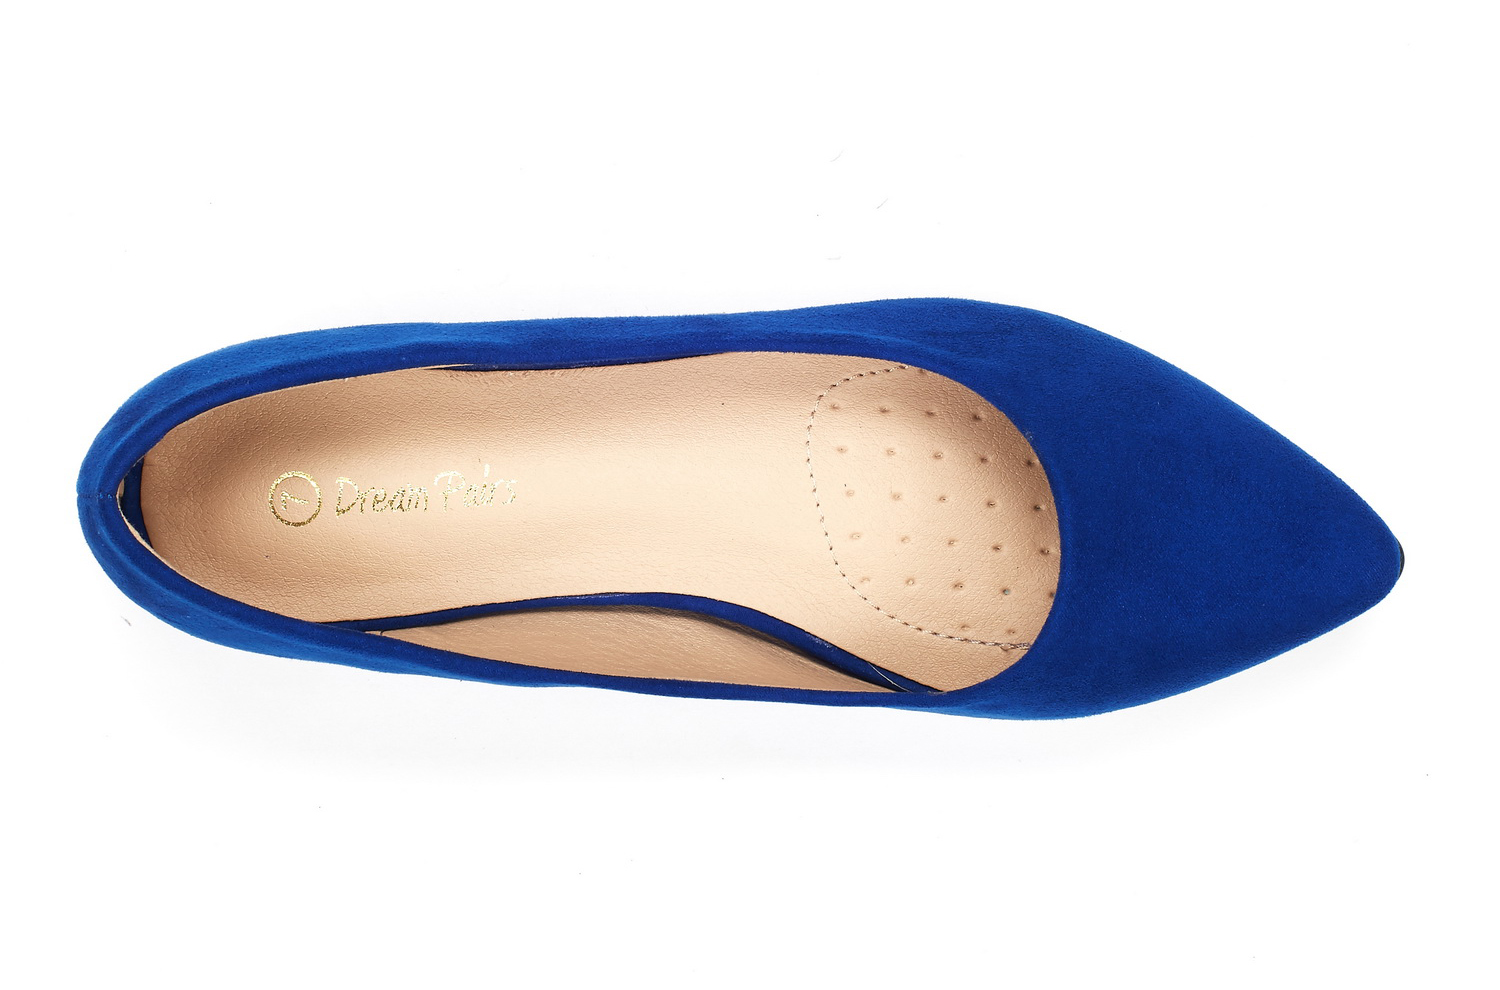 DREAM-PAIRS-Women-Low-Wedge-Flats-Ladies-Pointed-Toe-Slip-On-Comfort-Flat-Shoes thumbnail 17